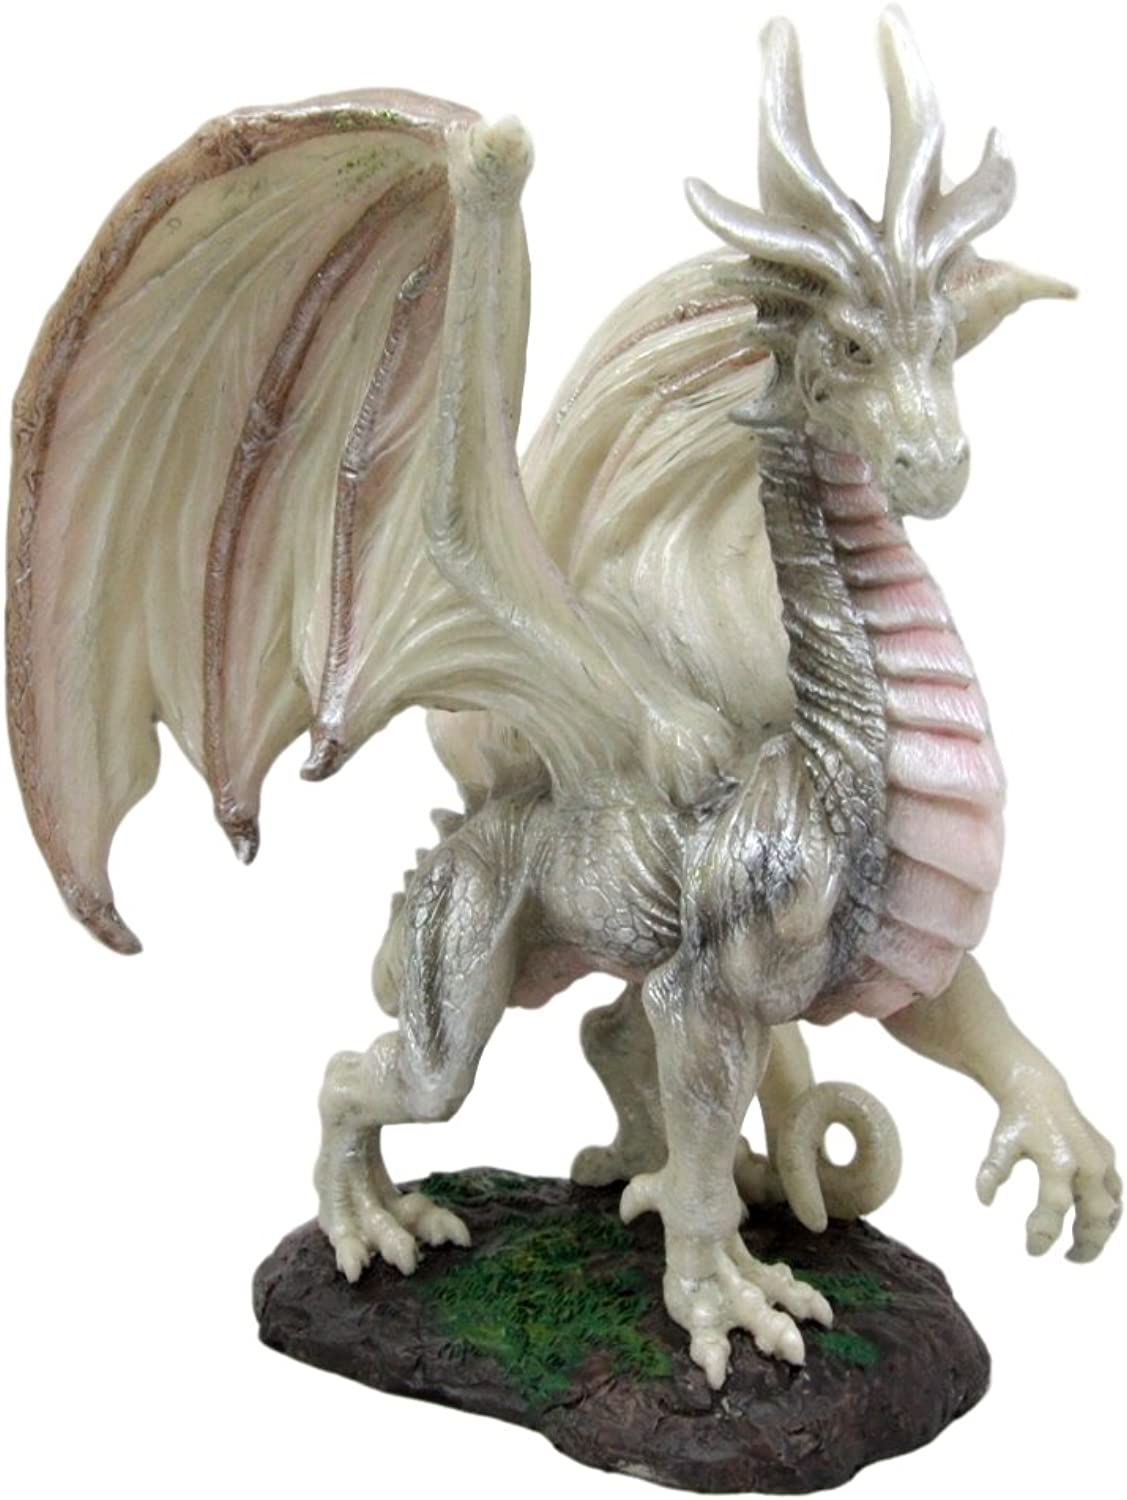 Atlantic Collectibles Mythical Fantasy Battle of Thrones Wise Aged Wraith Hydra Dragon Decorative Figurine 8 Tall